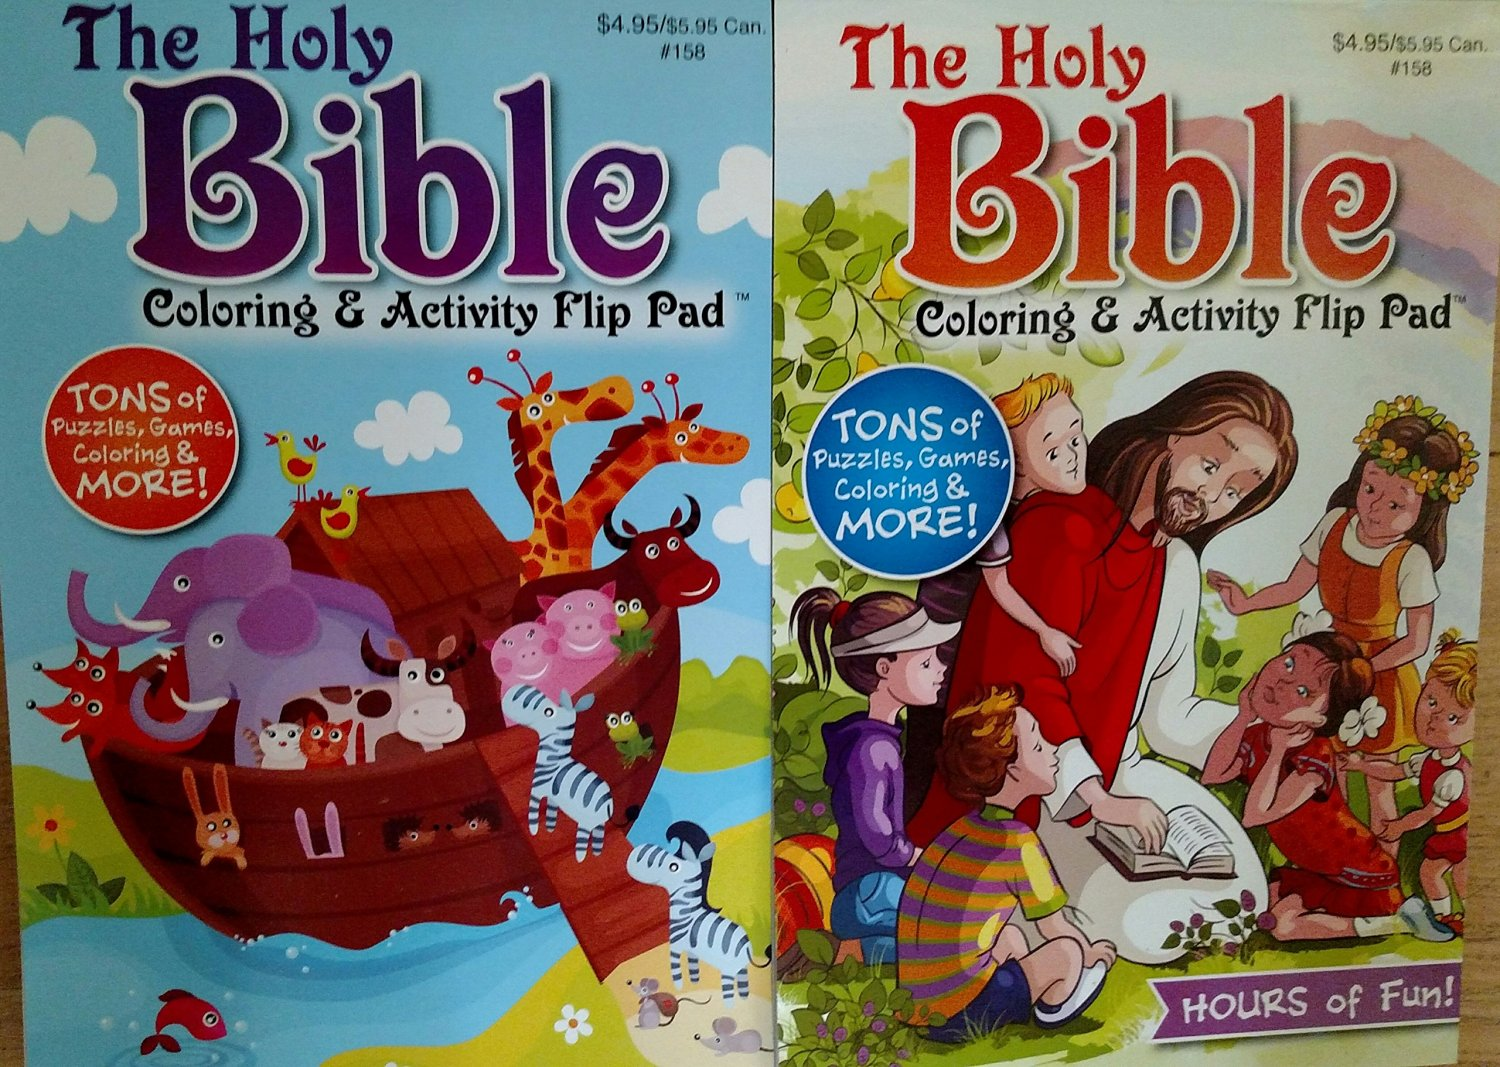 The Holy Bible Coloring & Activity Flip Pad. Assorted